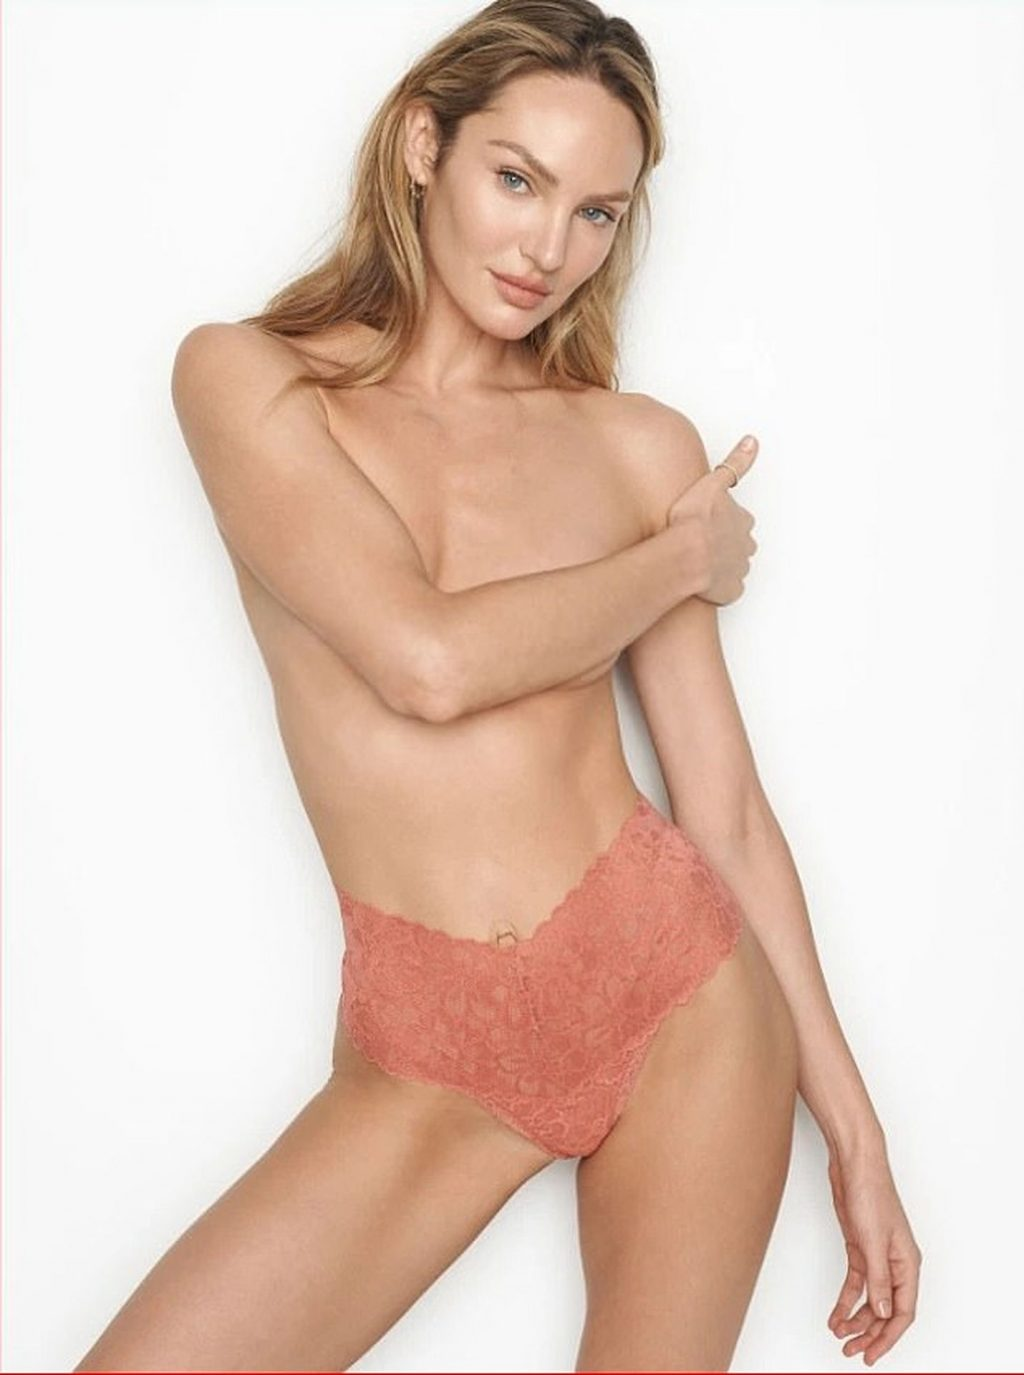 Candice Swanepoel Stuns in New Victoria's Secret Lingerie Campaign (7 Photos)